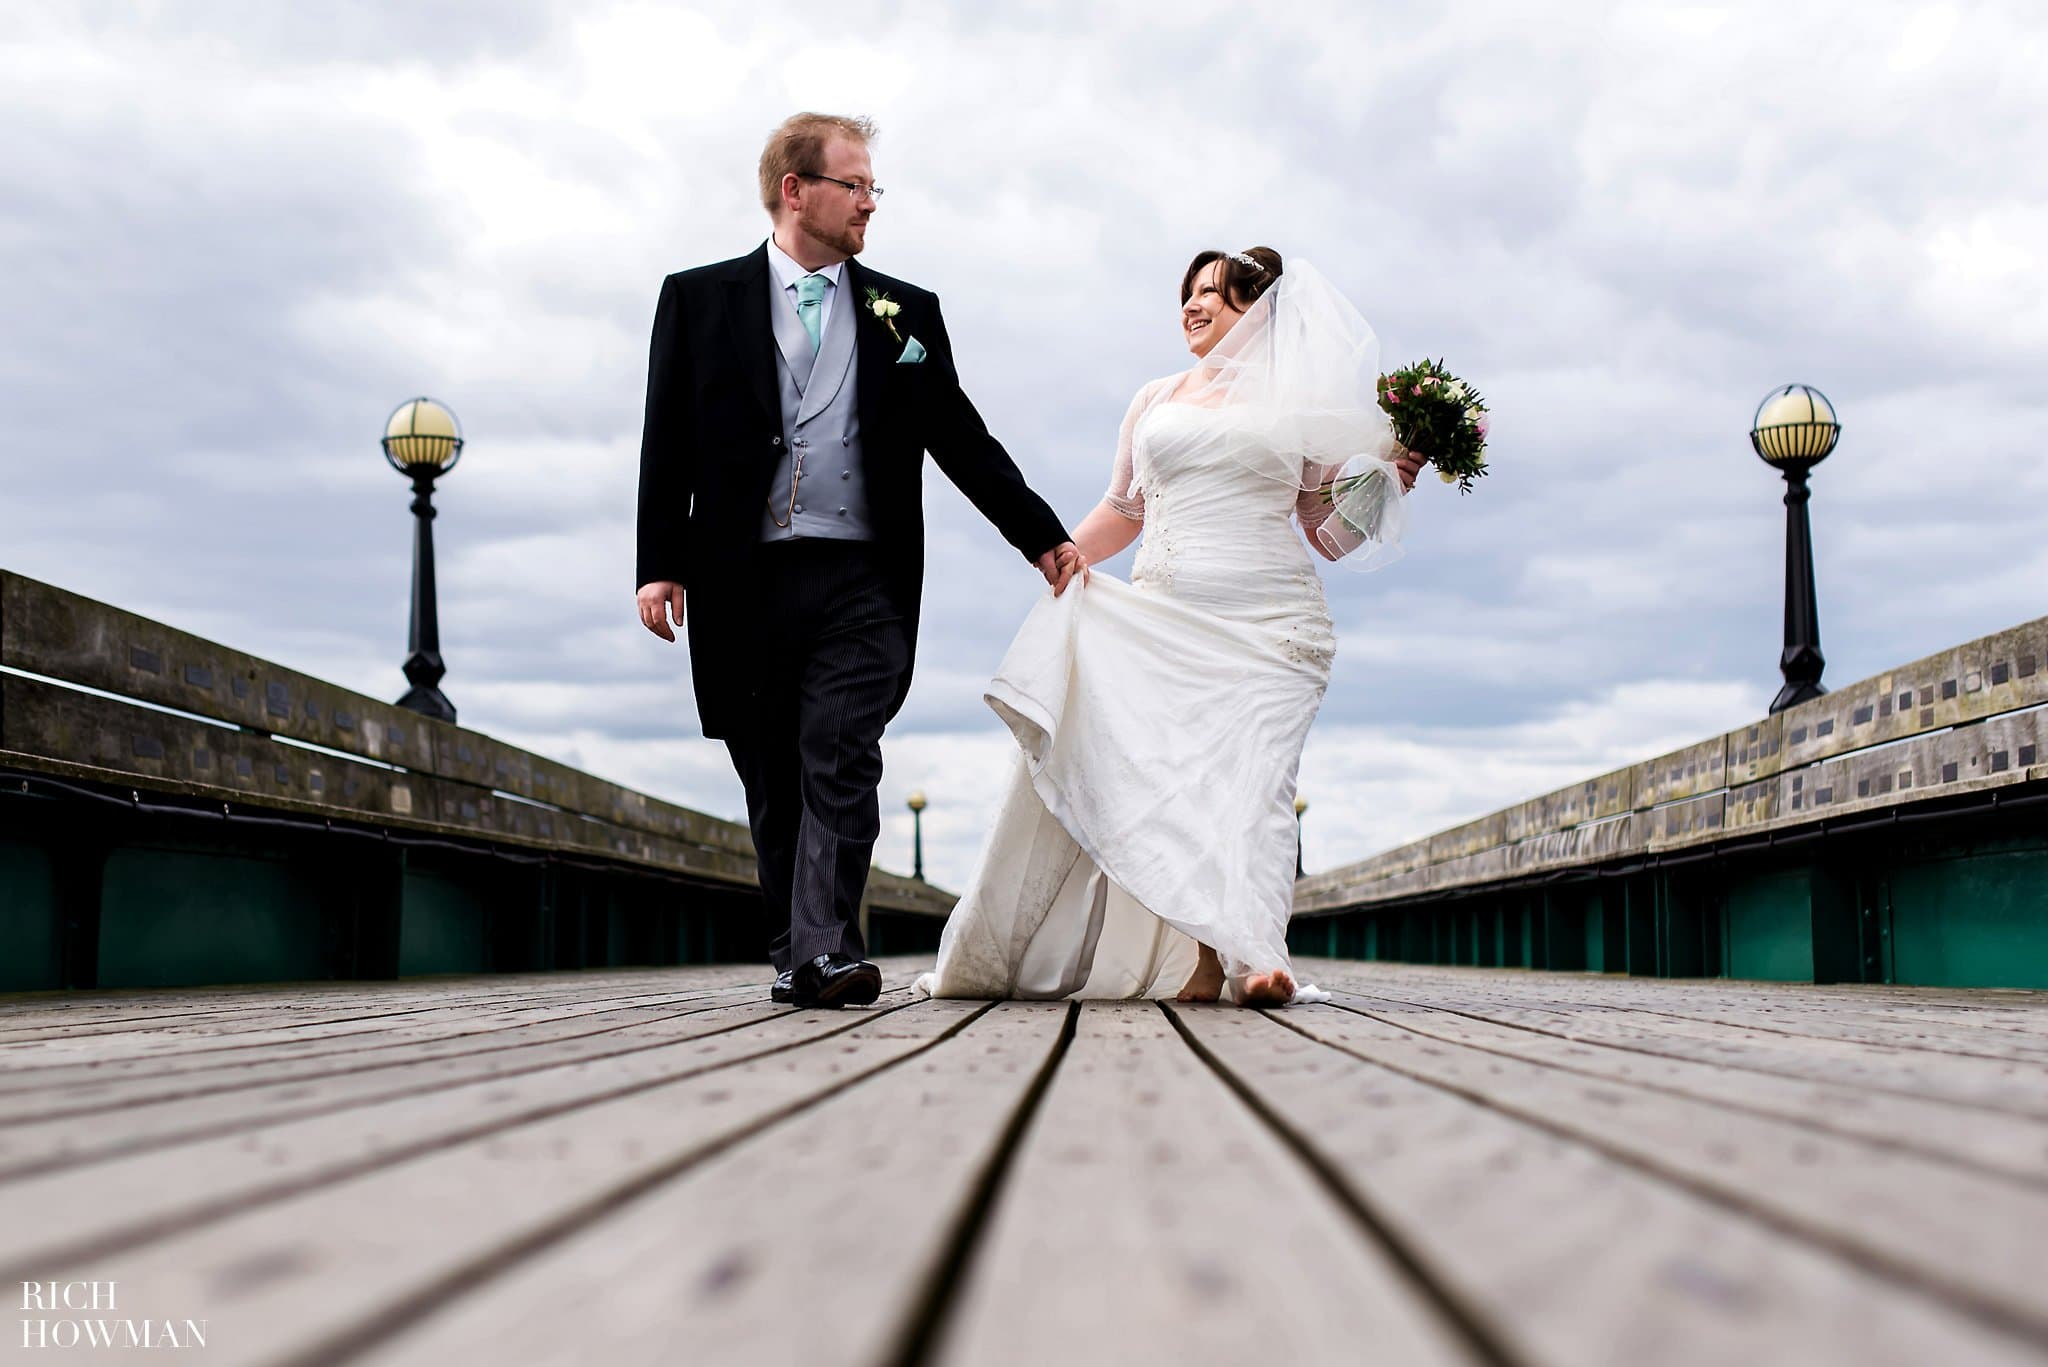 Clevedon Pier Wedding Photos Bride and Groom walking on pier